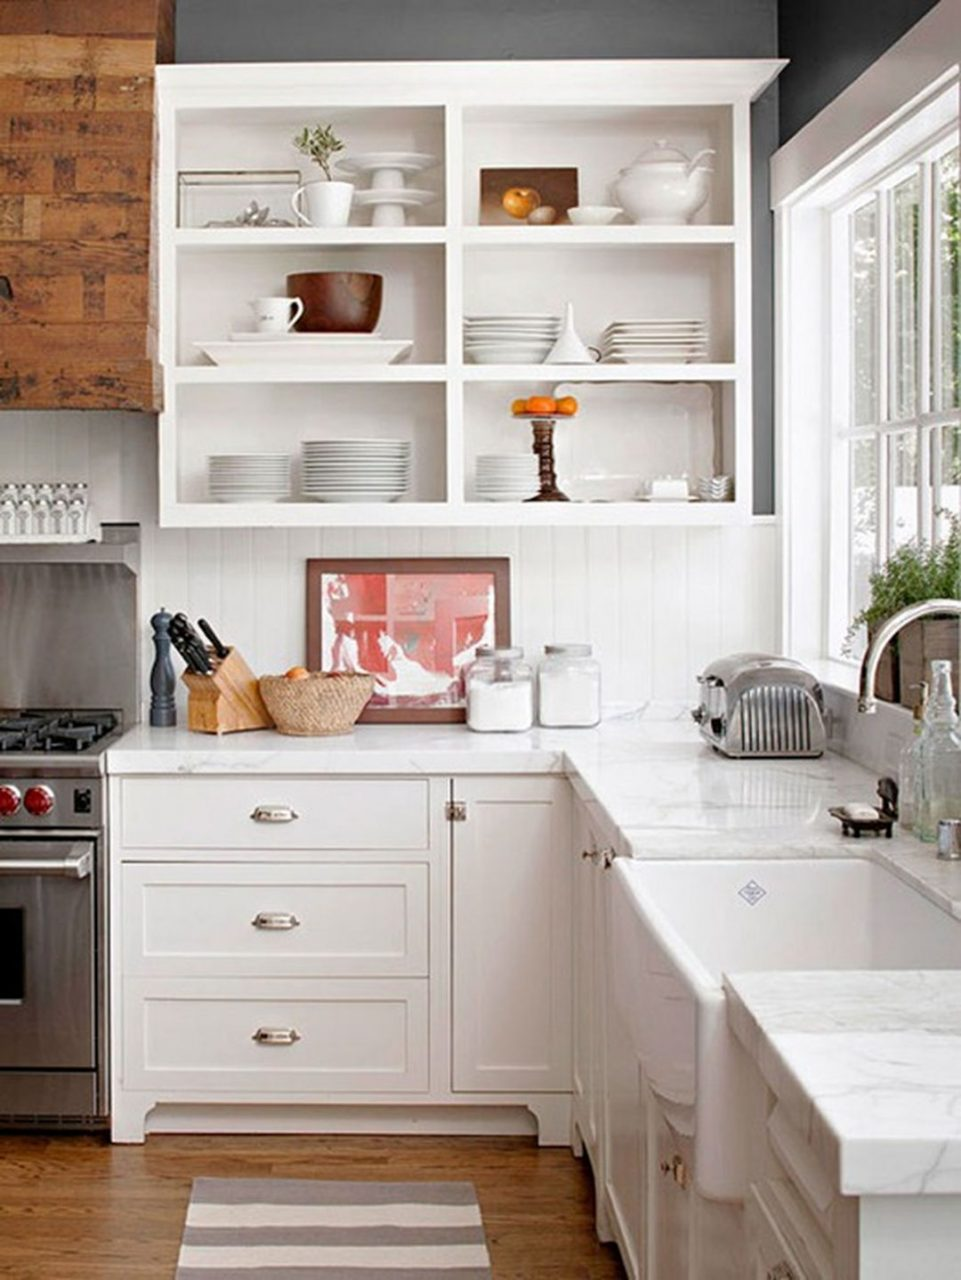 Top 25 Open Upper Kitchen Cabinets Design Ideas For Inspiration